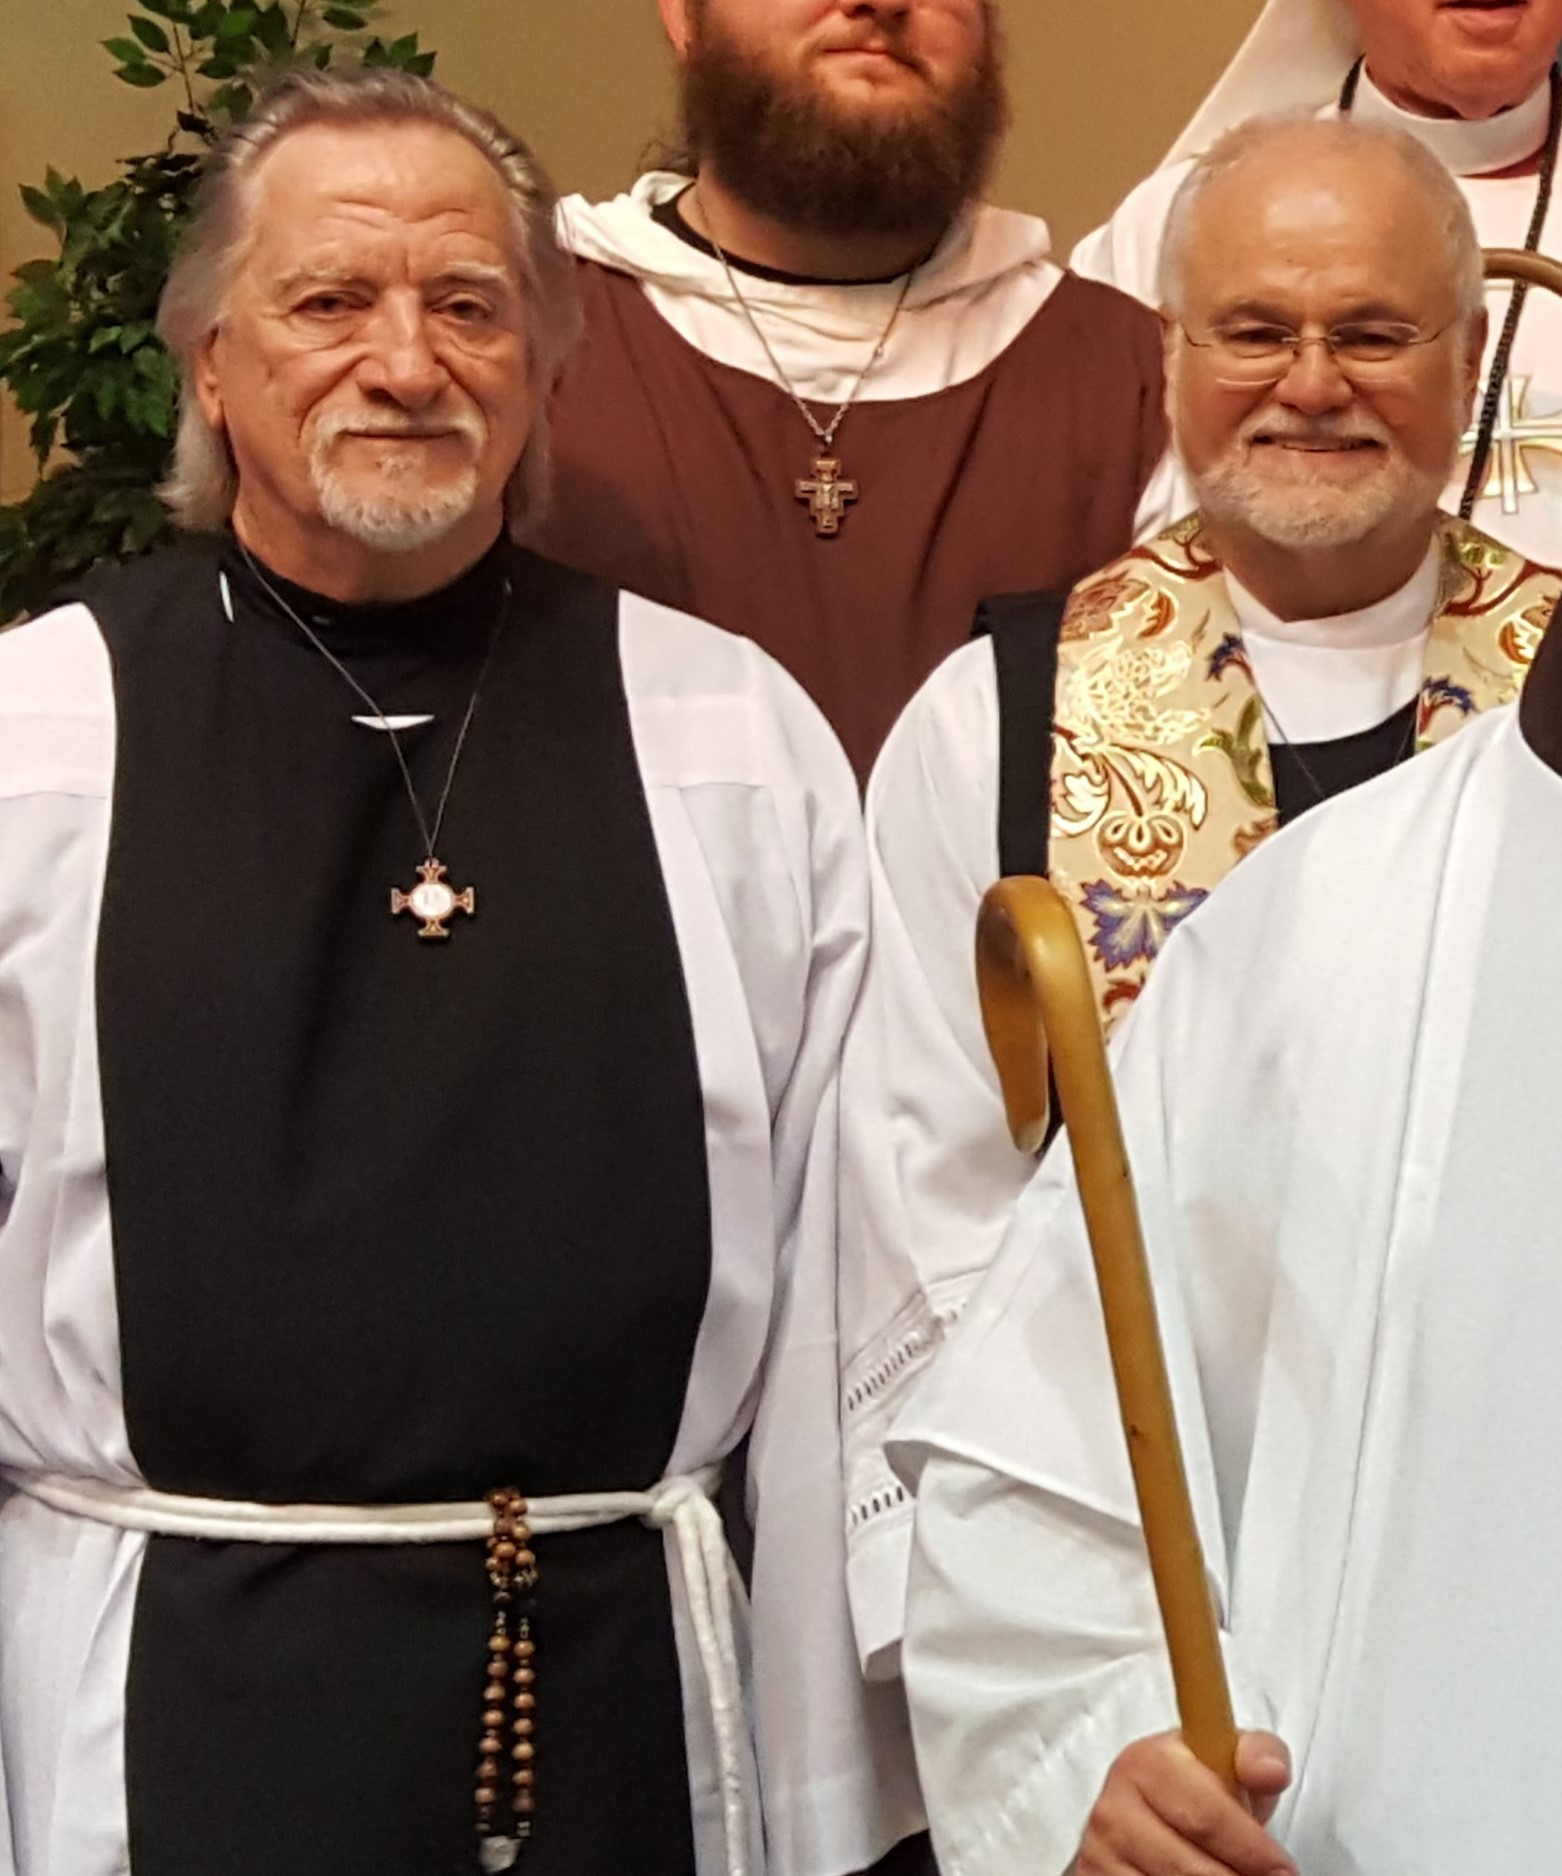 Br. Roy wearing his Benedictine scapular for the first official time with Fr. Jim